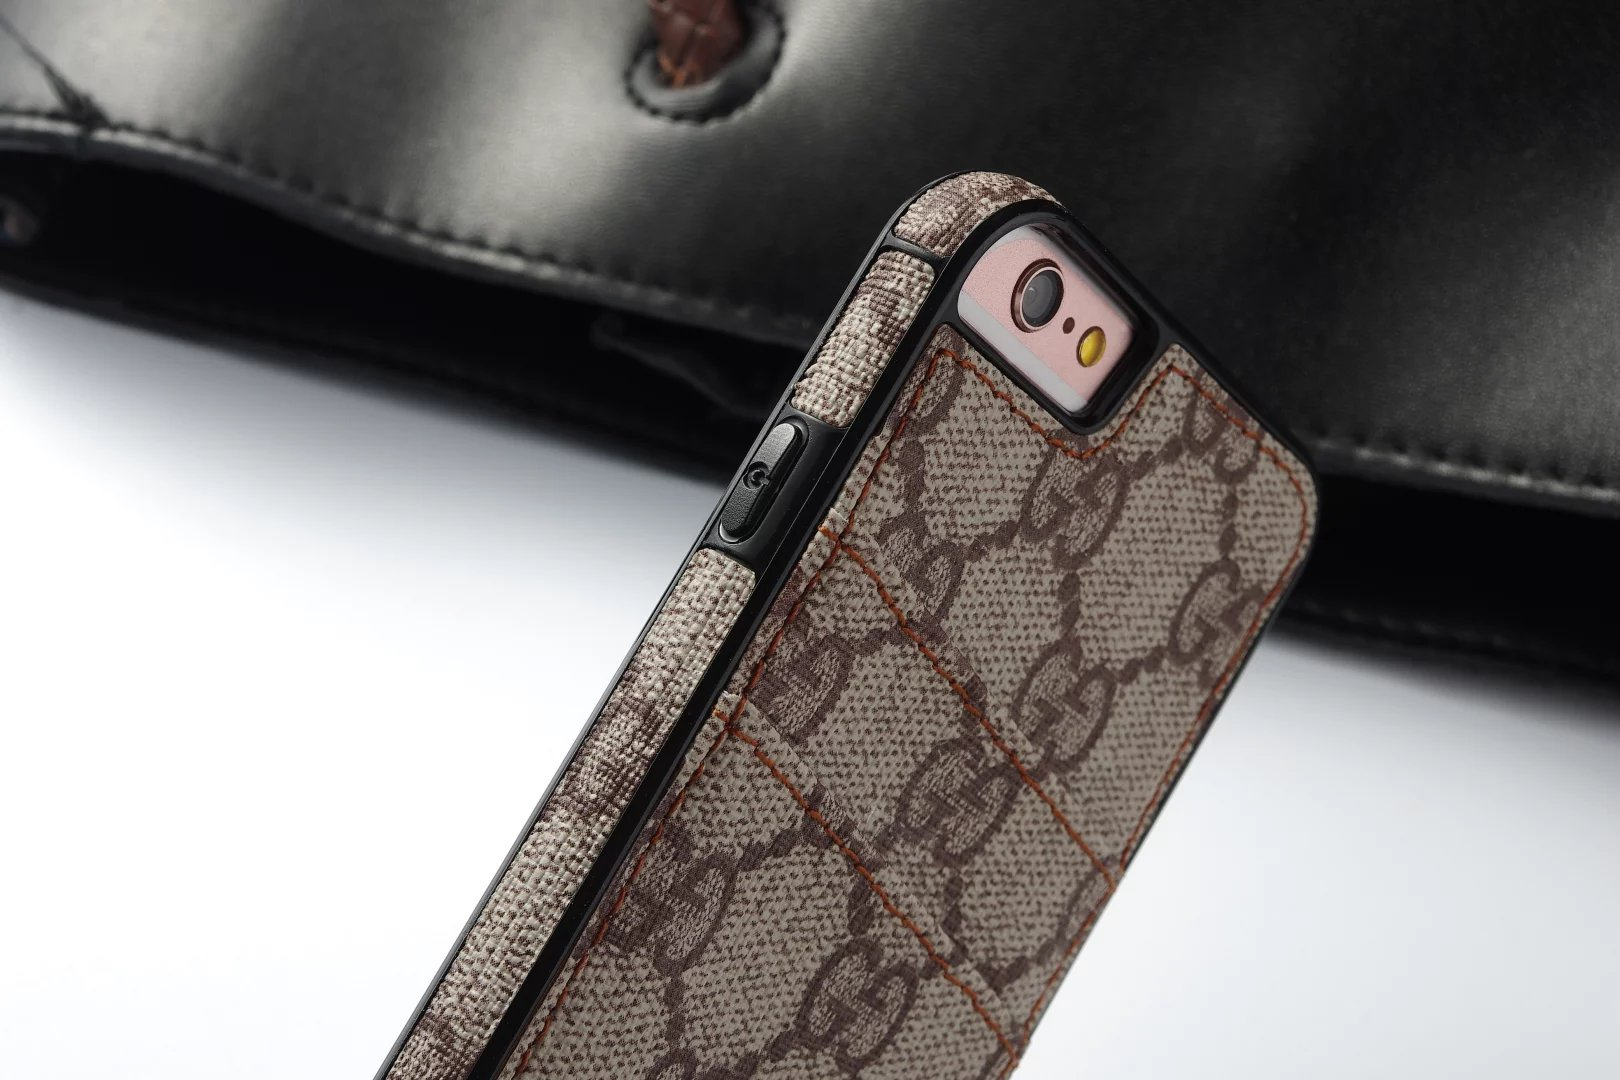 iphone case mit foto edle iphone hüllen Louis Vuitton iphone6s plus hülle handyhülle htc handy schutzhülle iphone 6s Plus iphone silikonhülle handy cover drucken iphone 6s Plus handy hülle iphone 6s Plus leder ca6s apple